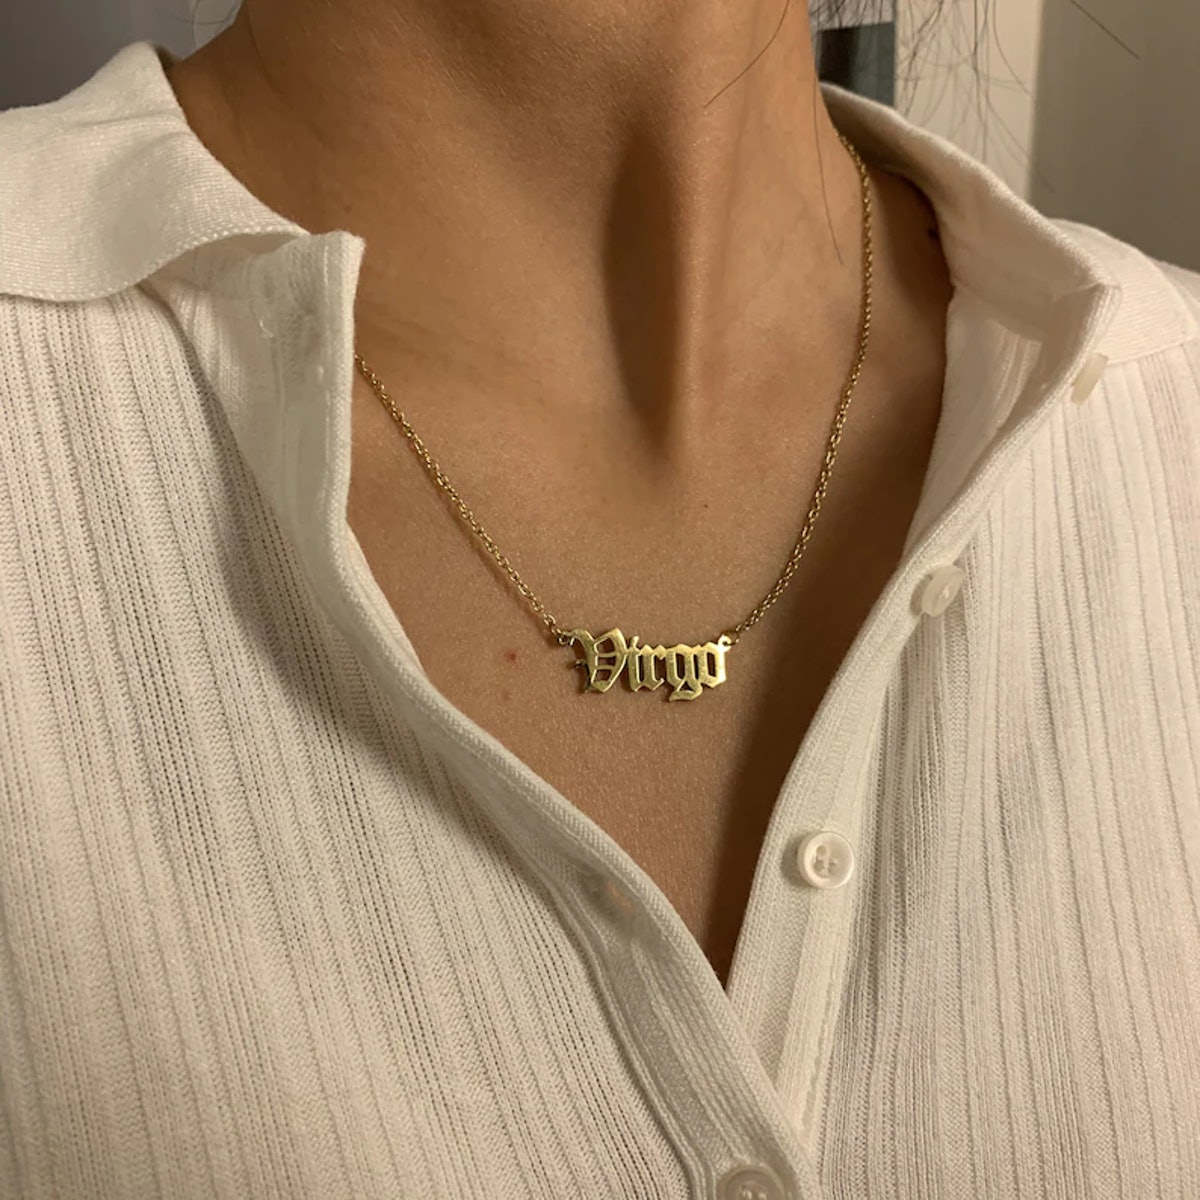 Thelidia Stainless Steel Virgo Necklace